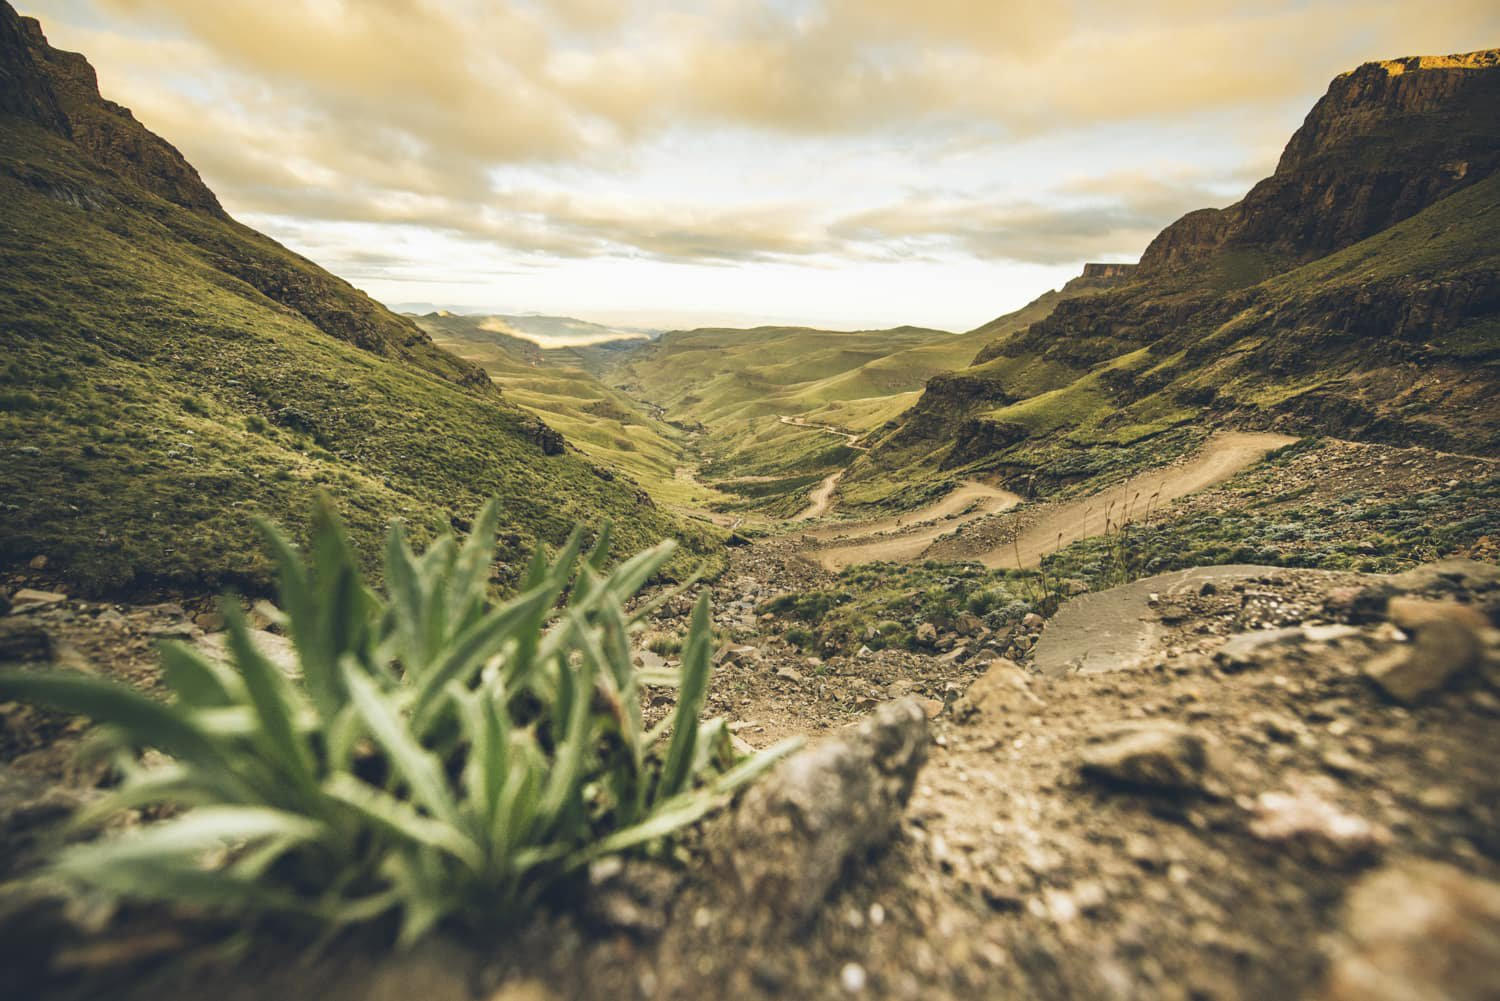 sani-pass-desmond-louw-bicycling-magazine-wowrides-0102